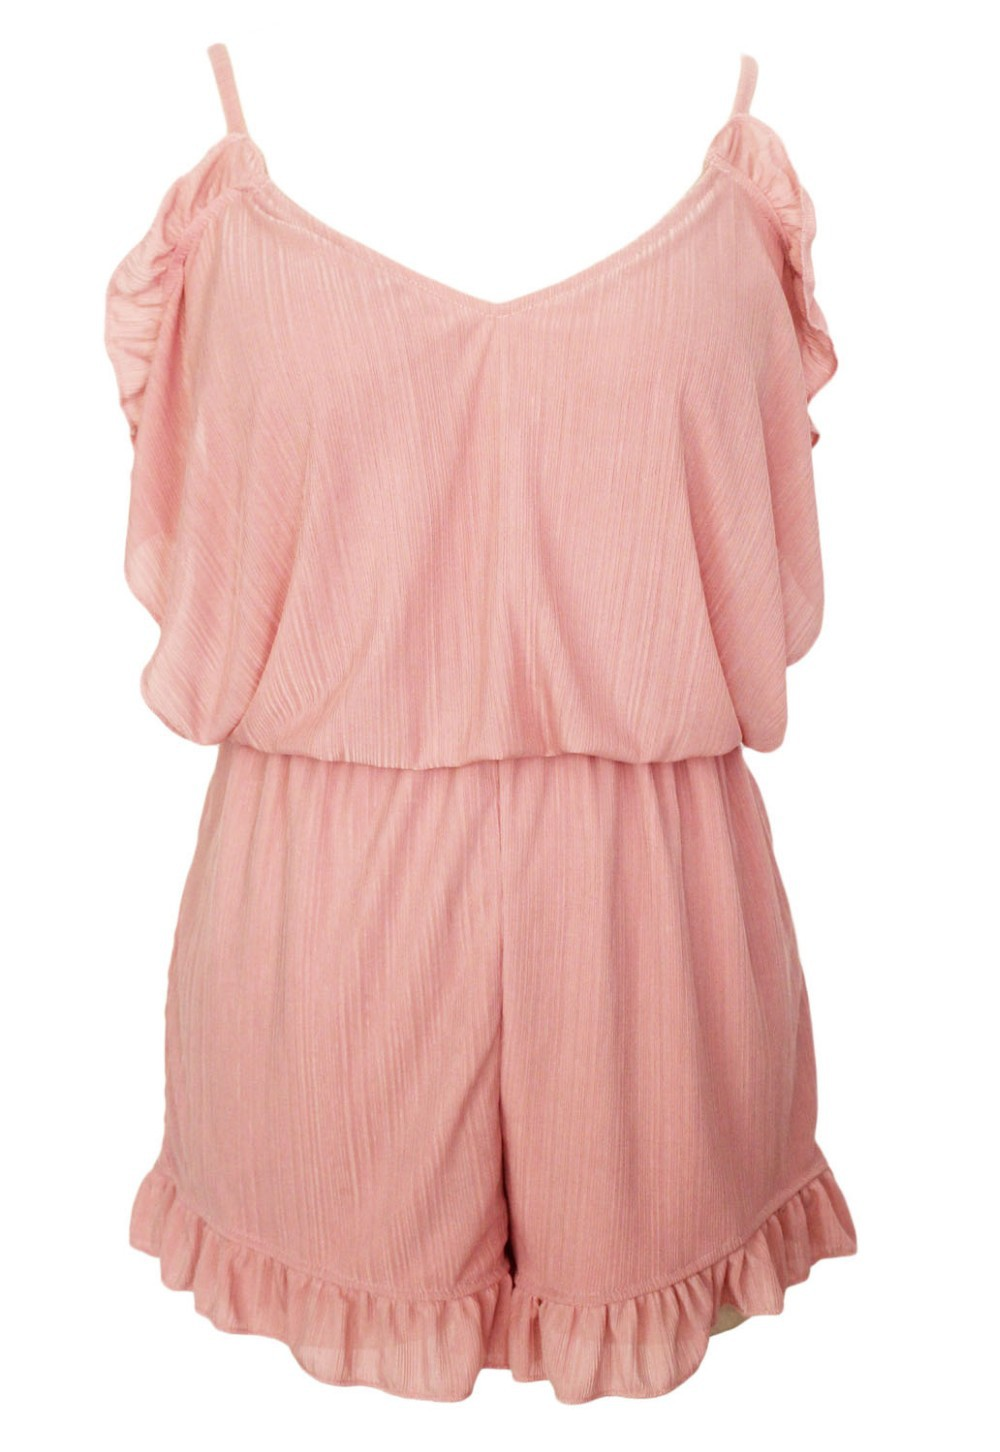 Pink-Ruffle-Off-The-Shoulder-Romper-LC60275-3